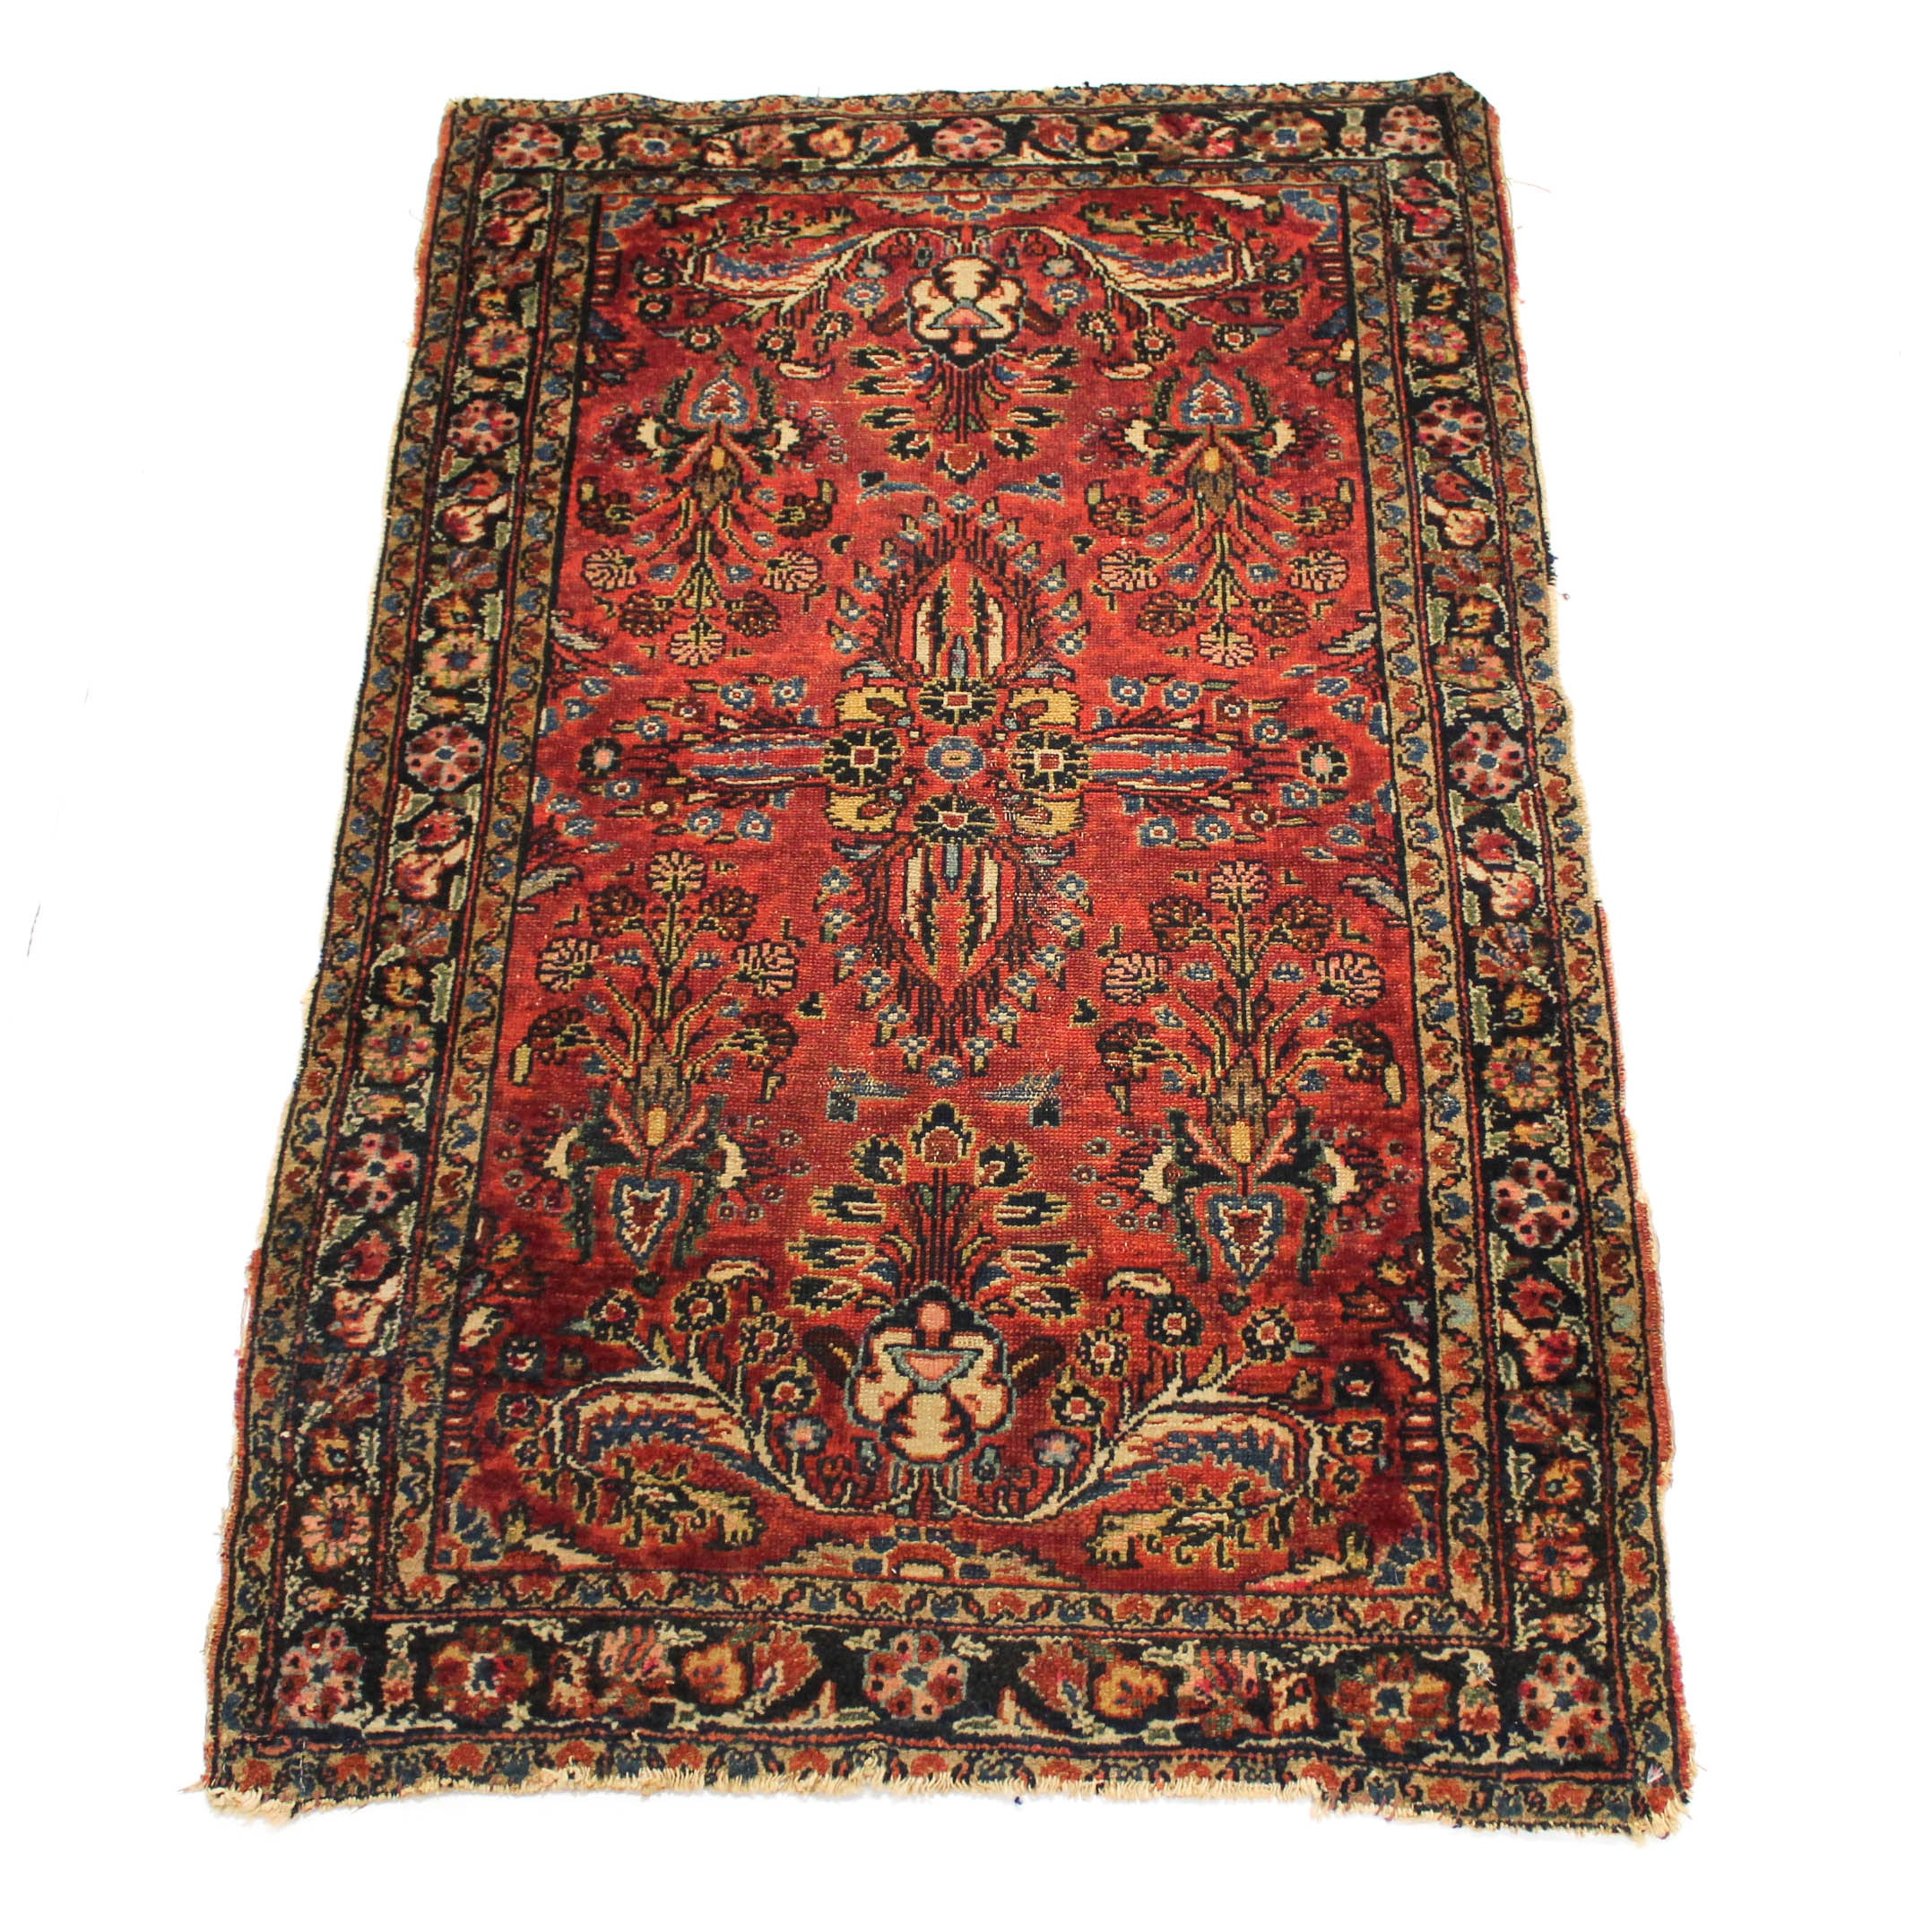 Antique Hand-Knotted Persian Lilihan Rug